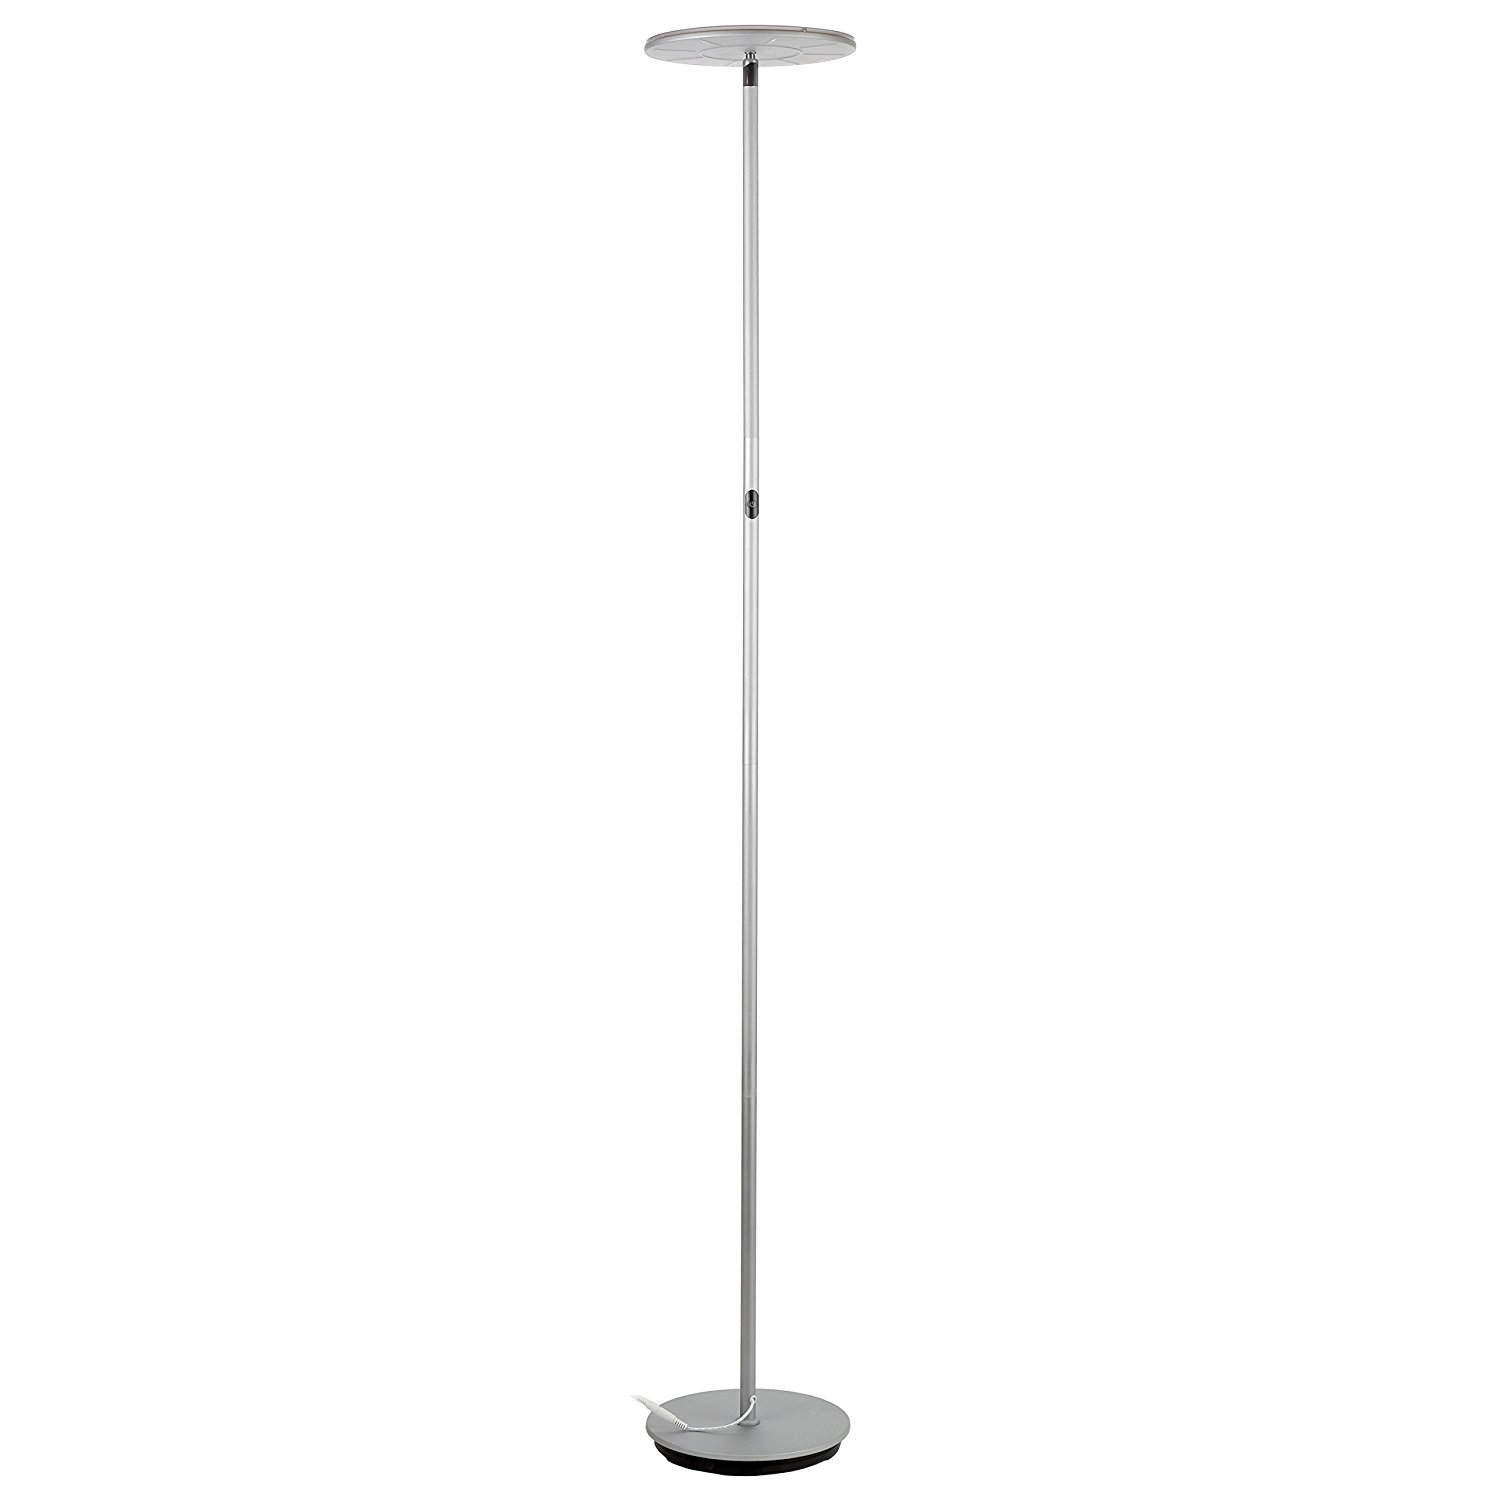 Brightech Sky Flux - Modern LED Torchiere Floor Lamp for Living Rooms & Bedrooms - Adjustable Warm to Cool White - Tall Pole, Standing Office Light - Bright, Minimalist & Contemporary Uplight - Silver